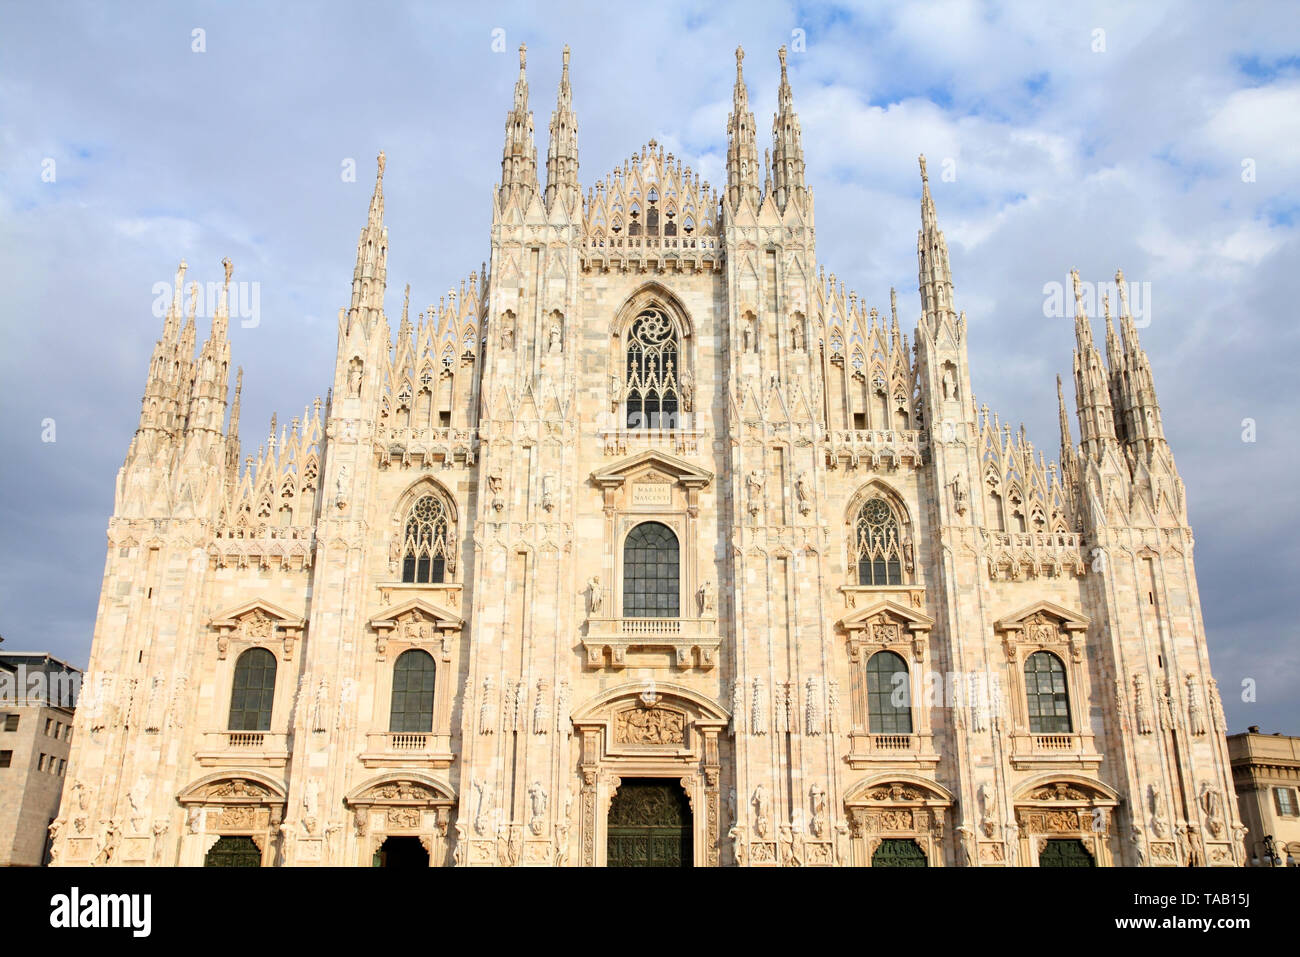 Cathedral of Milan. Catholic church in Italy. Gothic facade in sunset light. - Stock Image